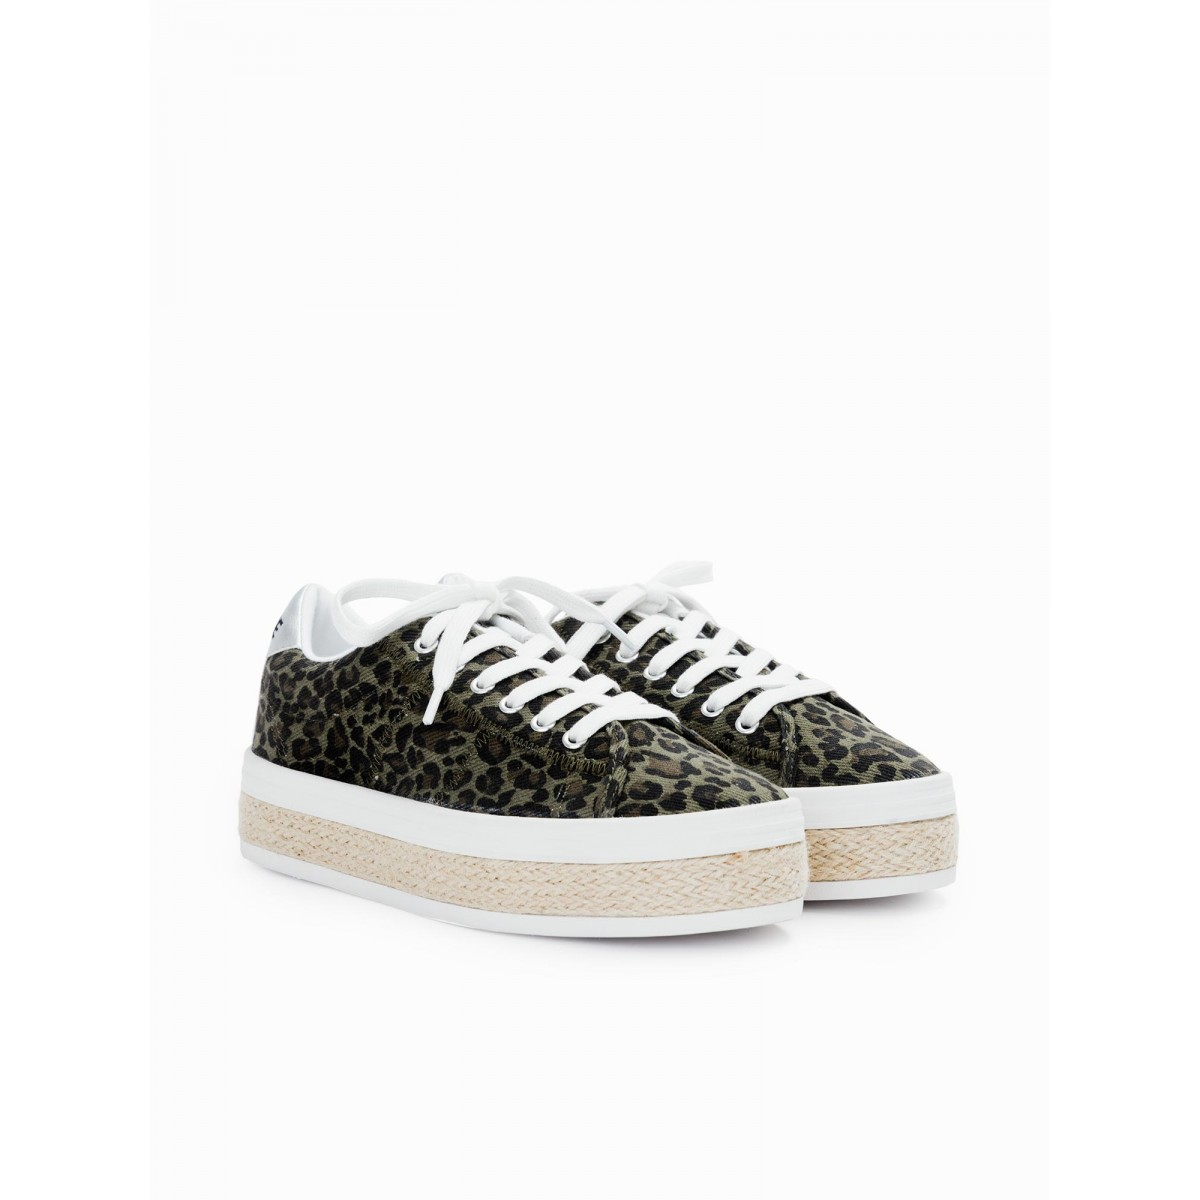 No Name MALIBU SNEAKER - CANVAS/LEOPARD - ARMY